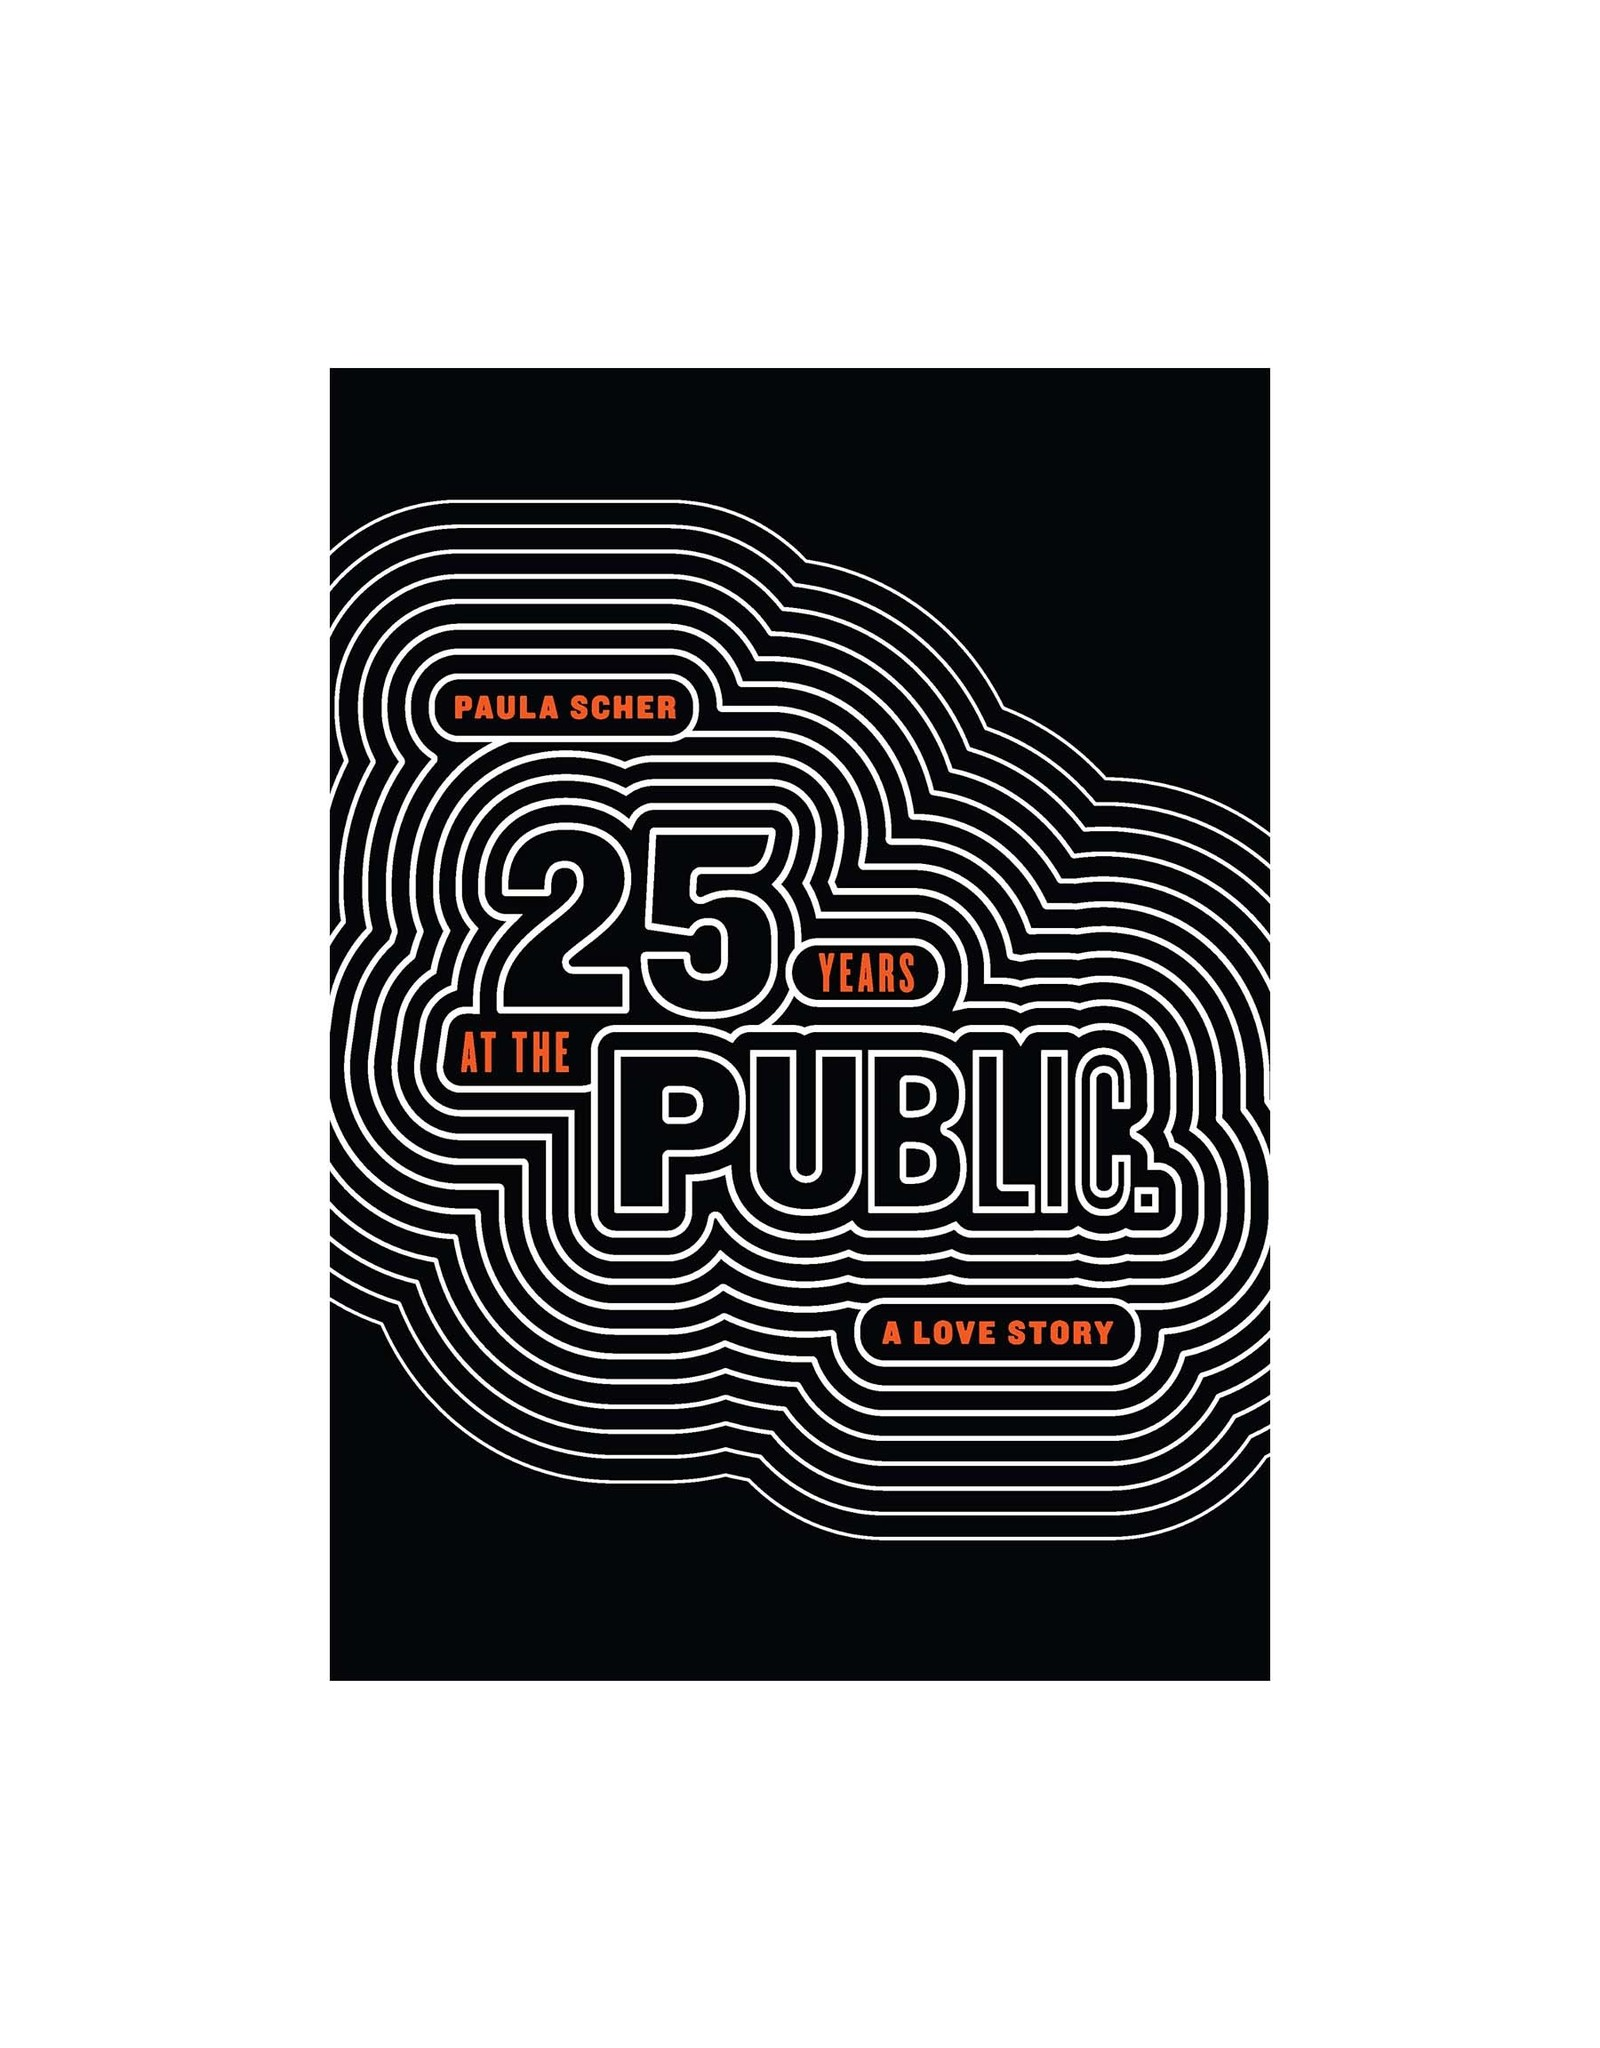 Paula Scher: Twenty Five Years at the Public, a Love Story